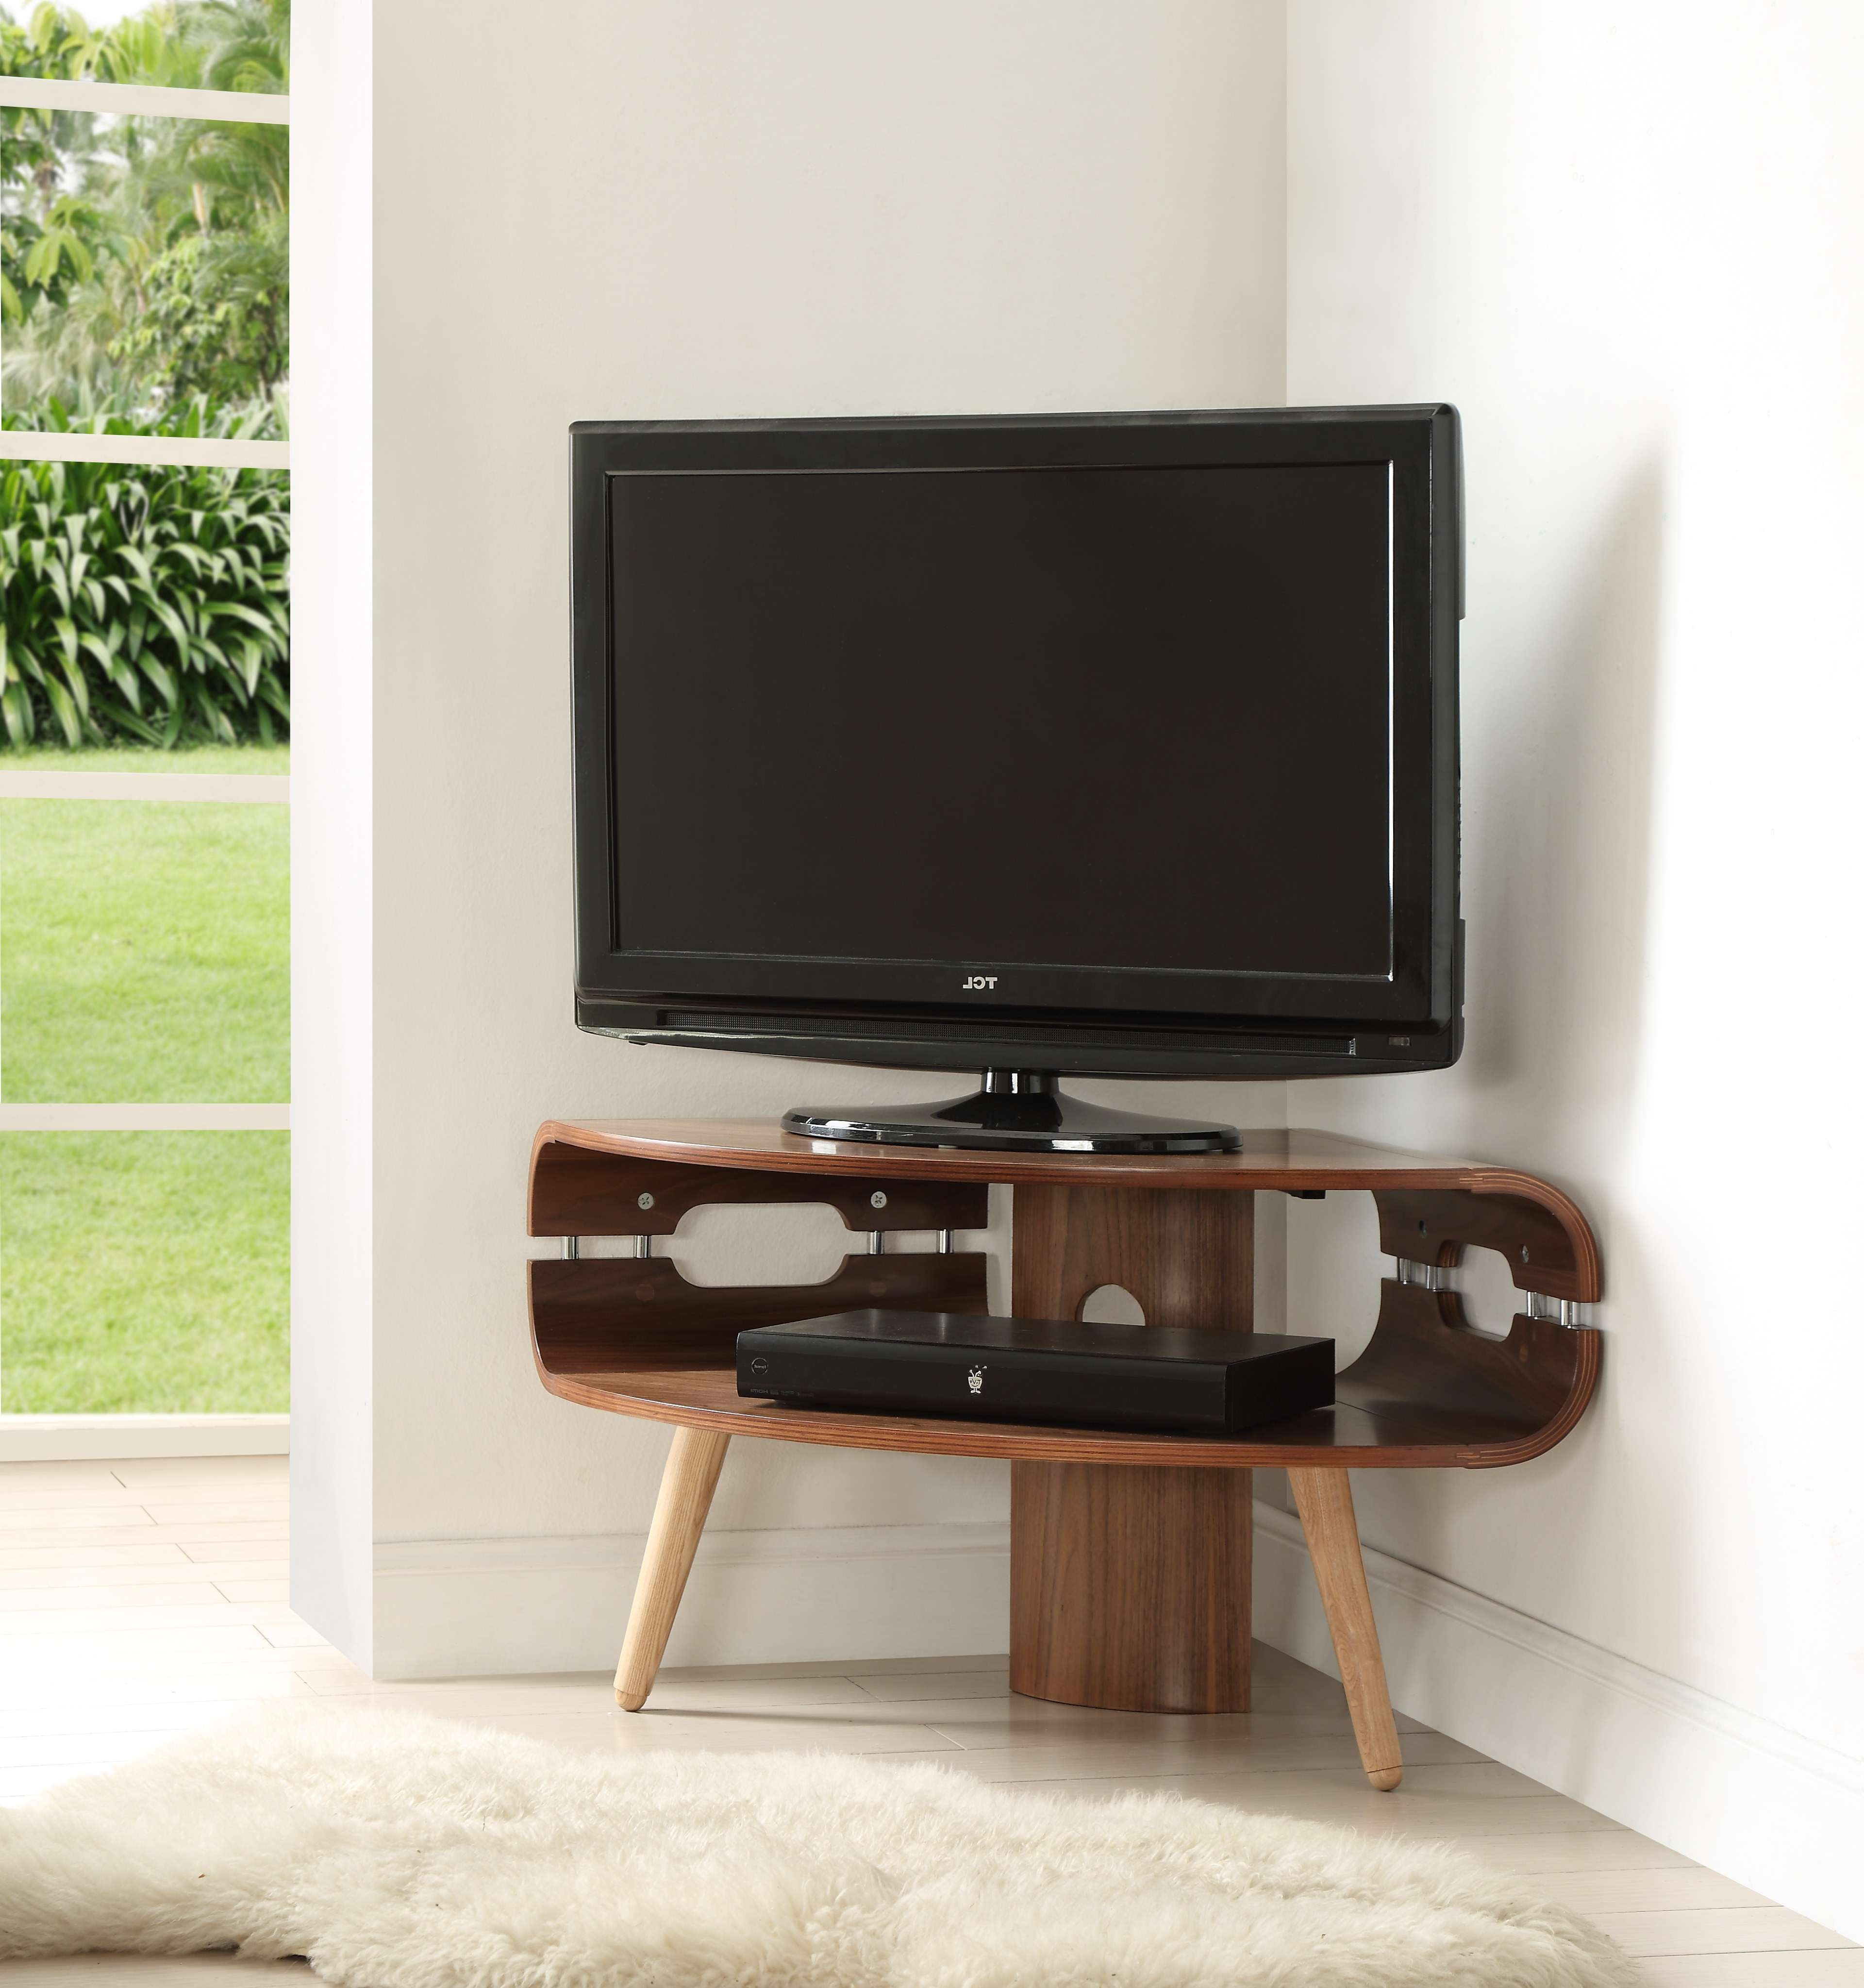 Tv Stand : Black Corner Fireplace Tv Stand Natural Wood Standtv With Wood Corner Tv Cabinets (View 15 of 20)